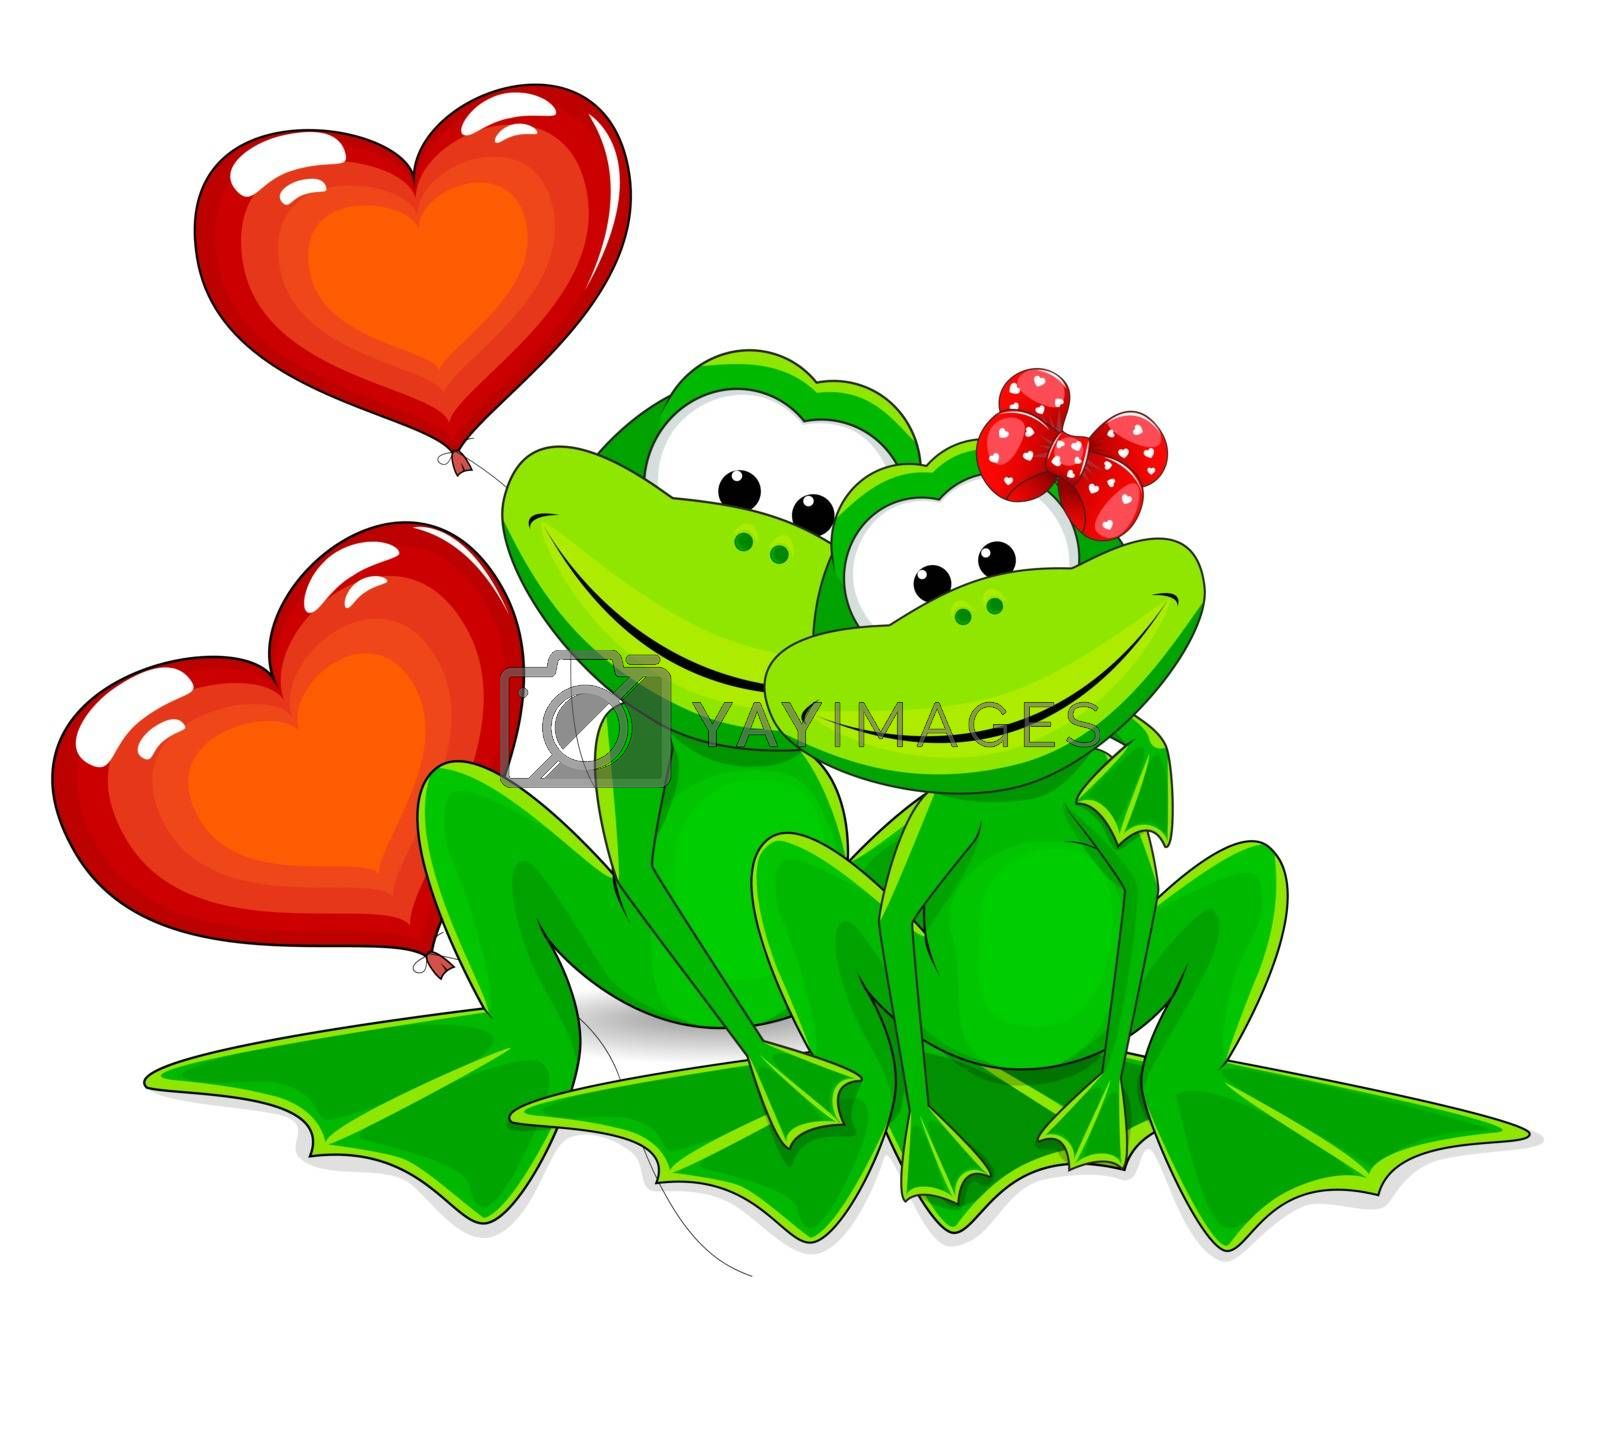 Two green frog with balloons. Frogs and two red balloons in the form of heart.